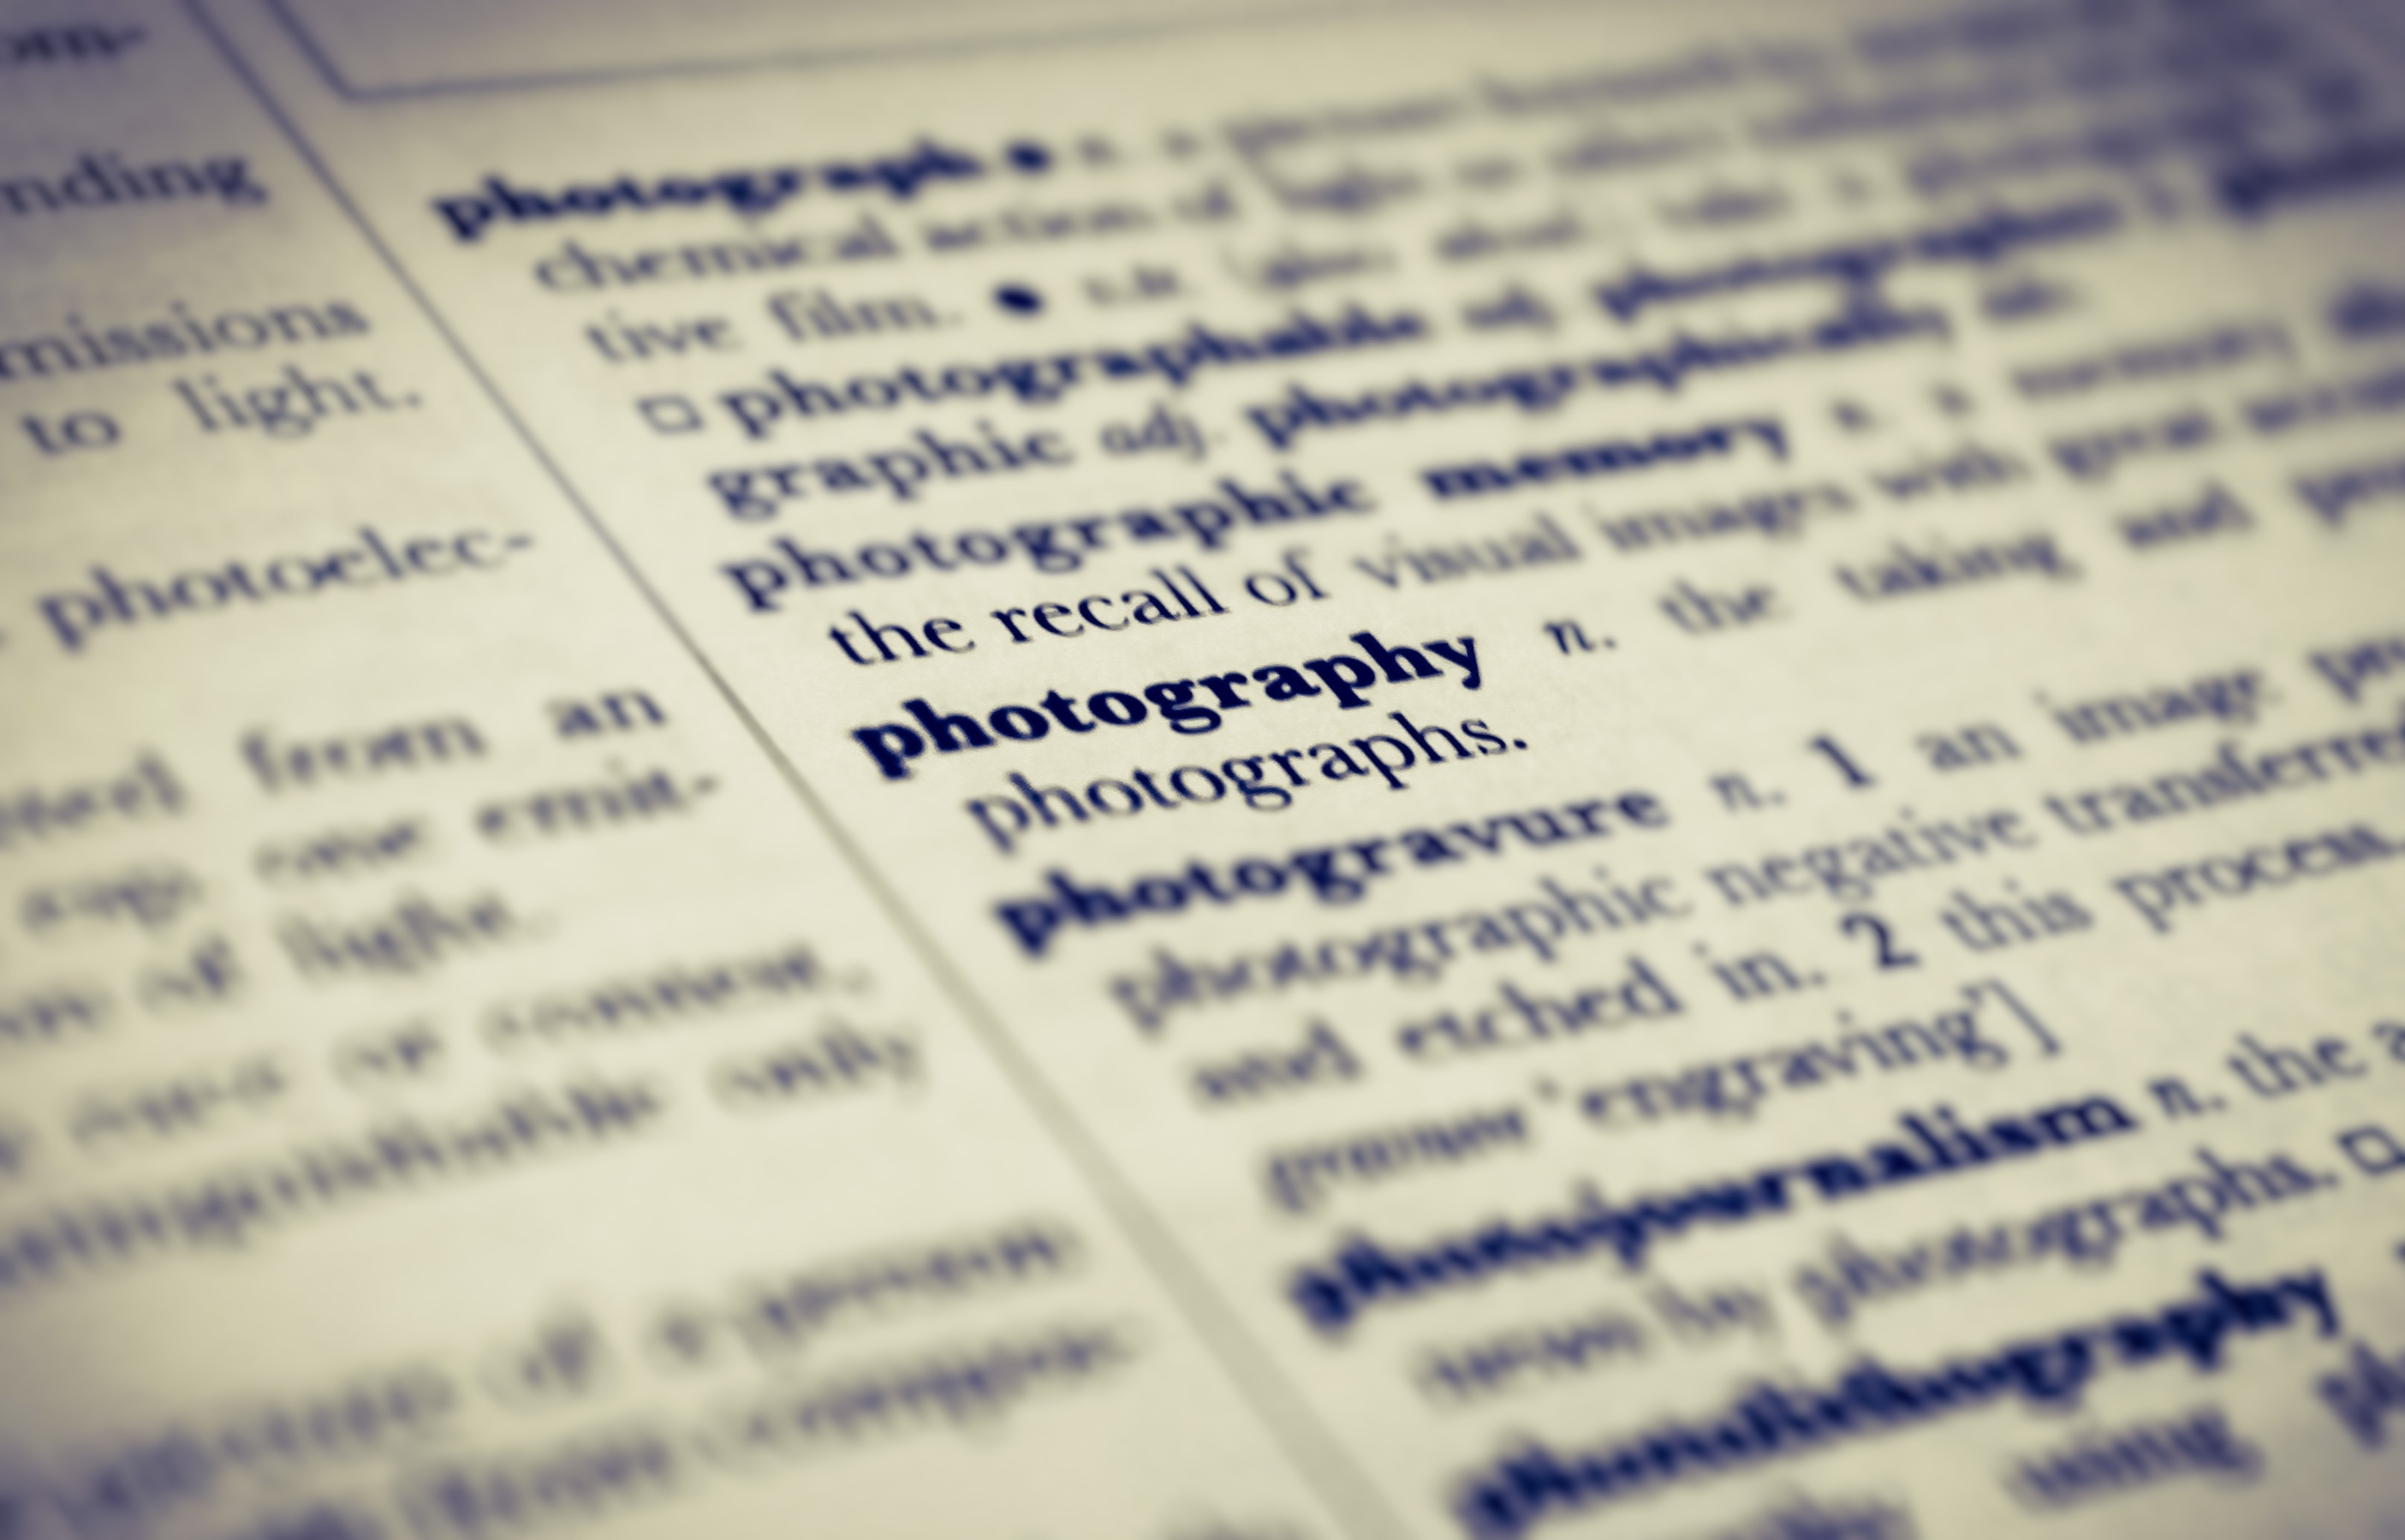 Selective photo of photography